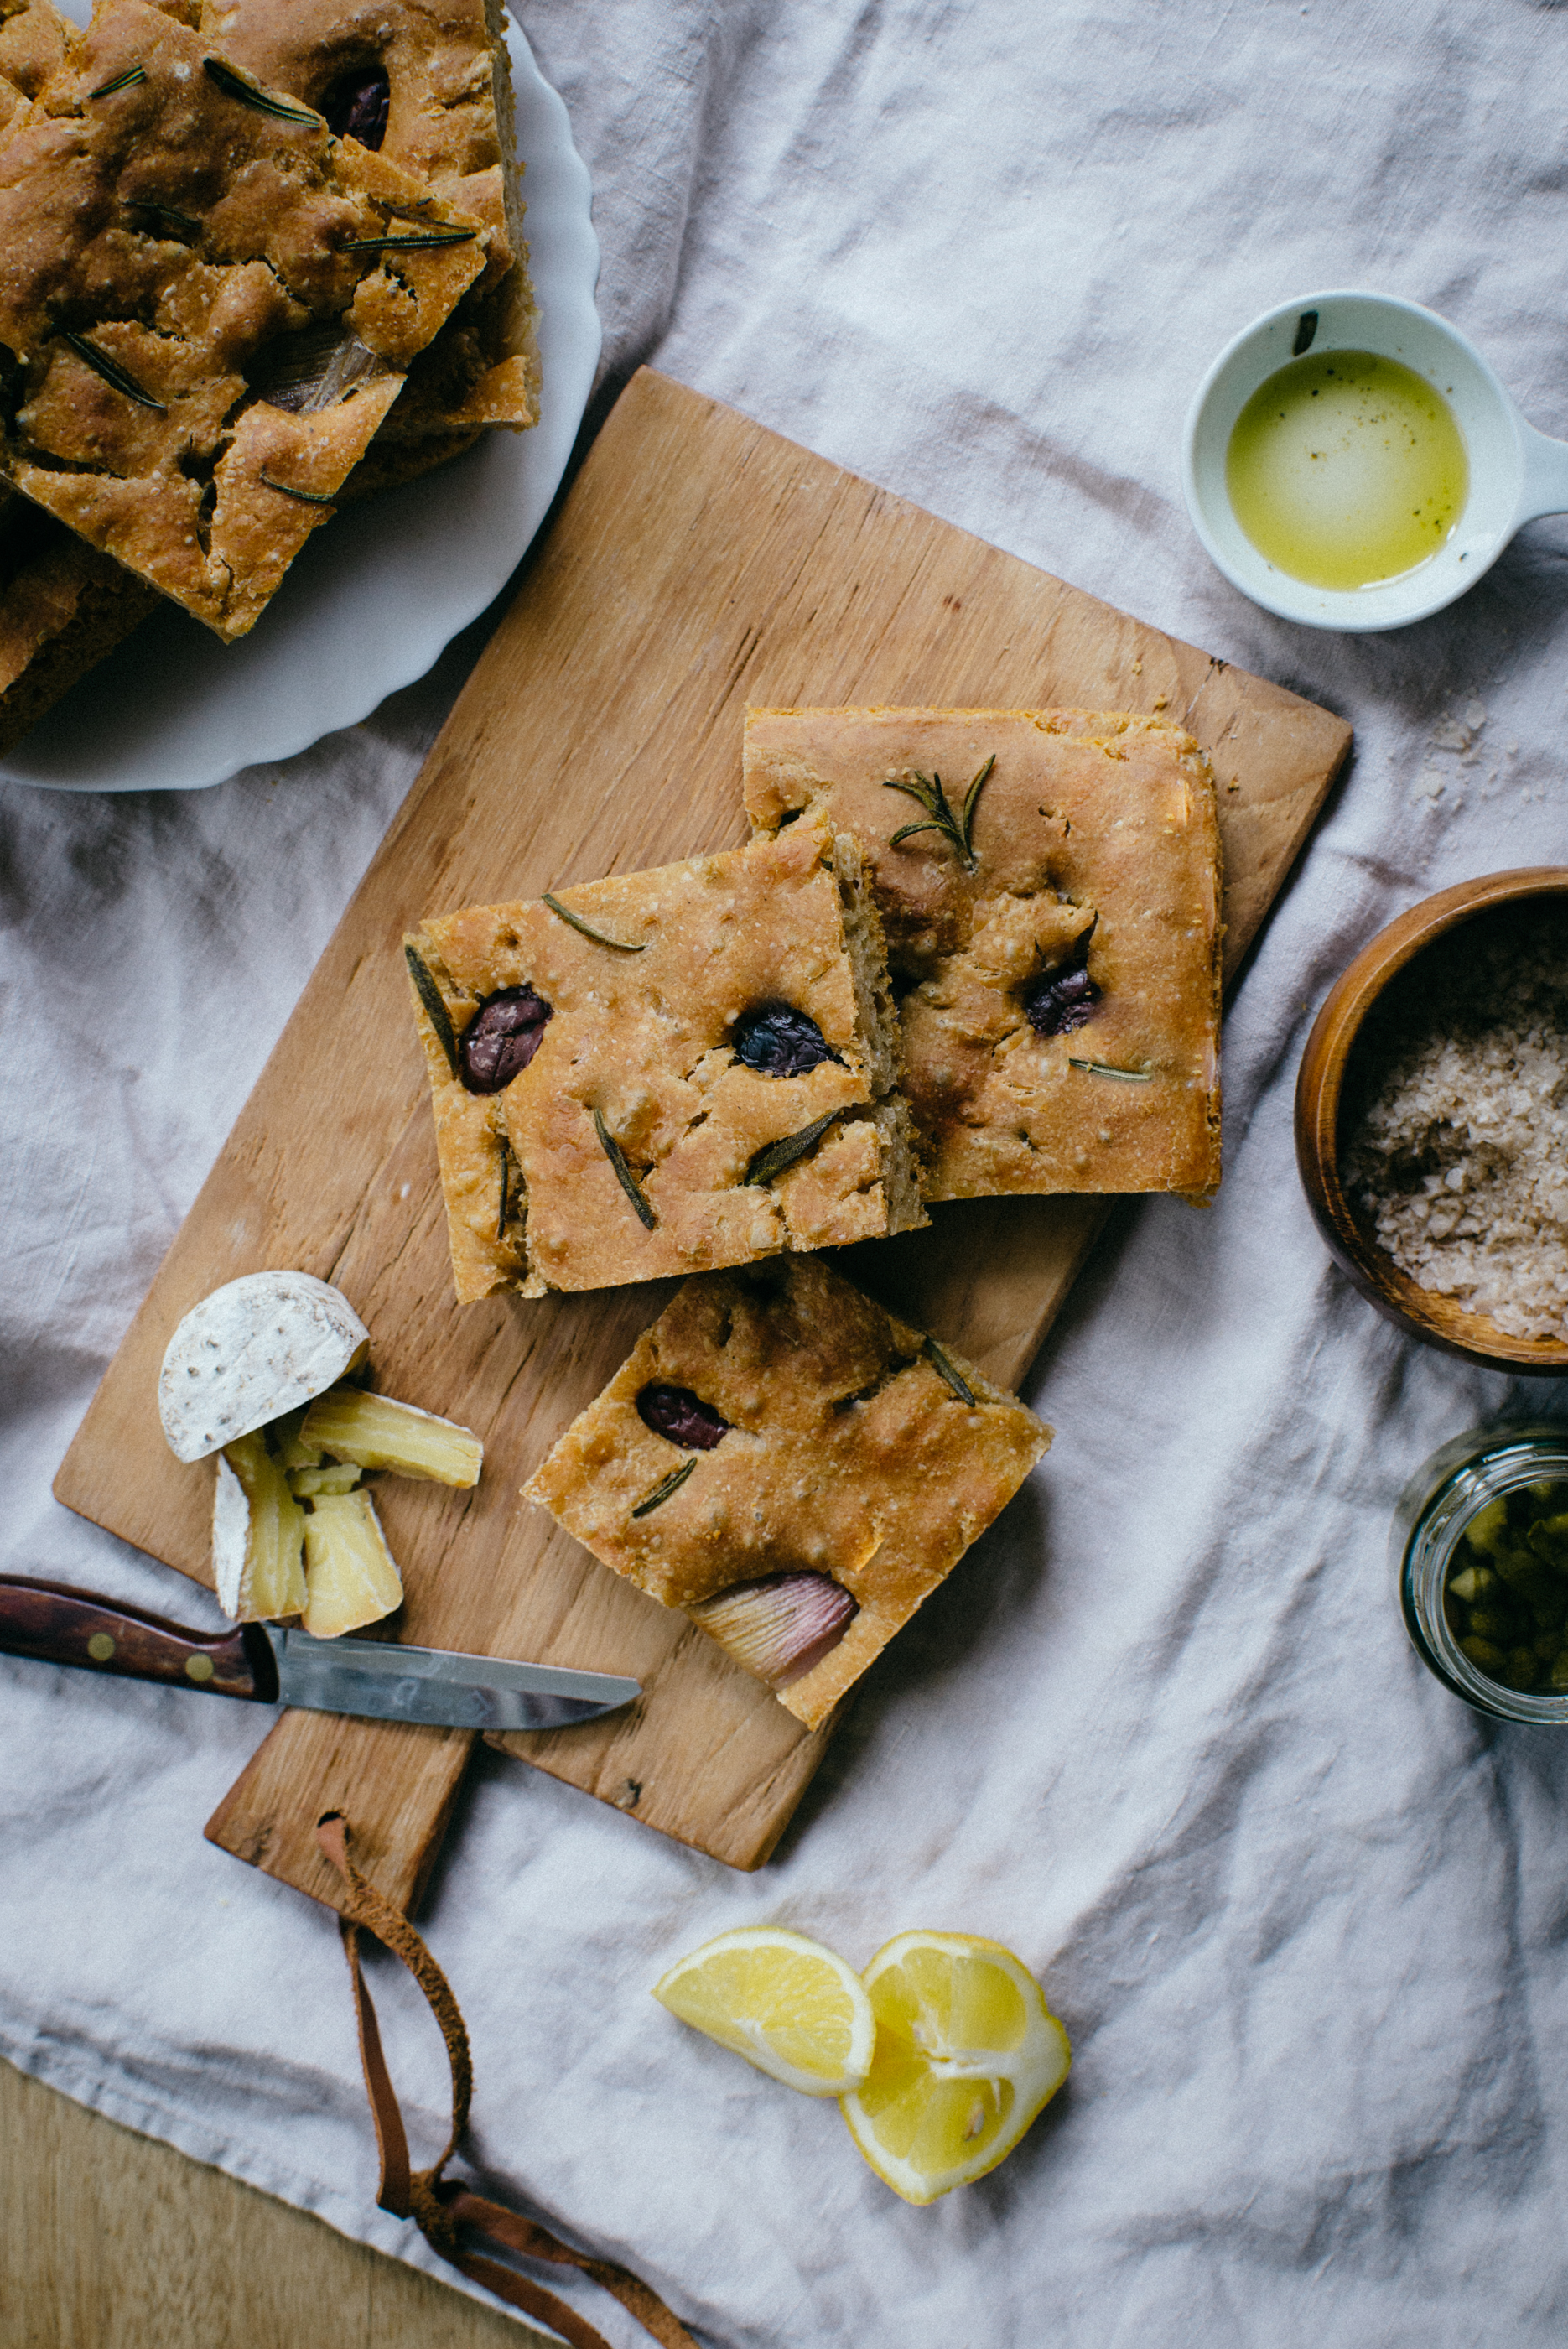 Sourdough Focaccia with Shallots, Olives & Rosemary